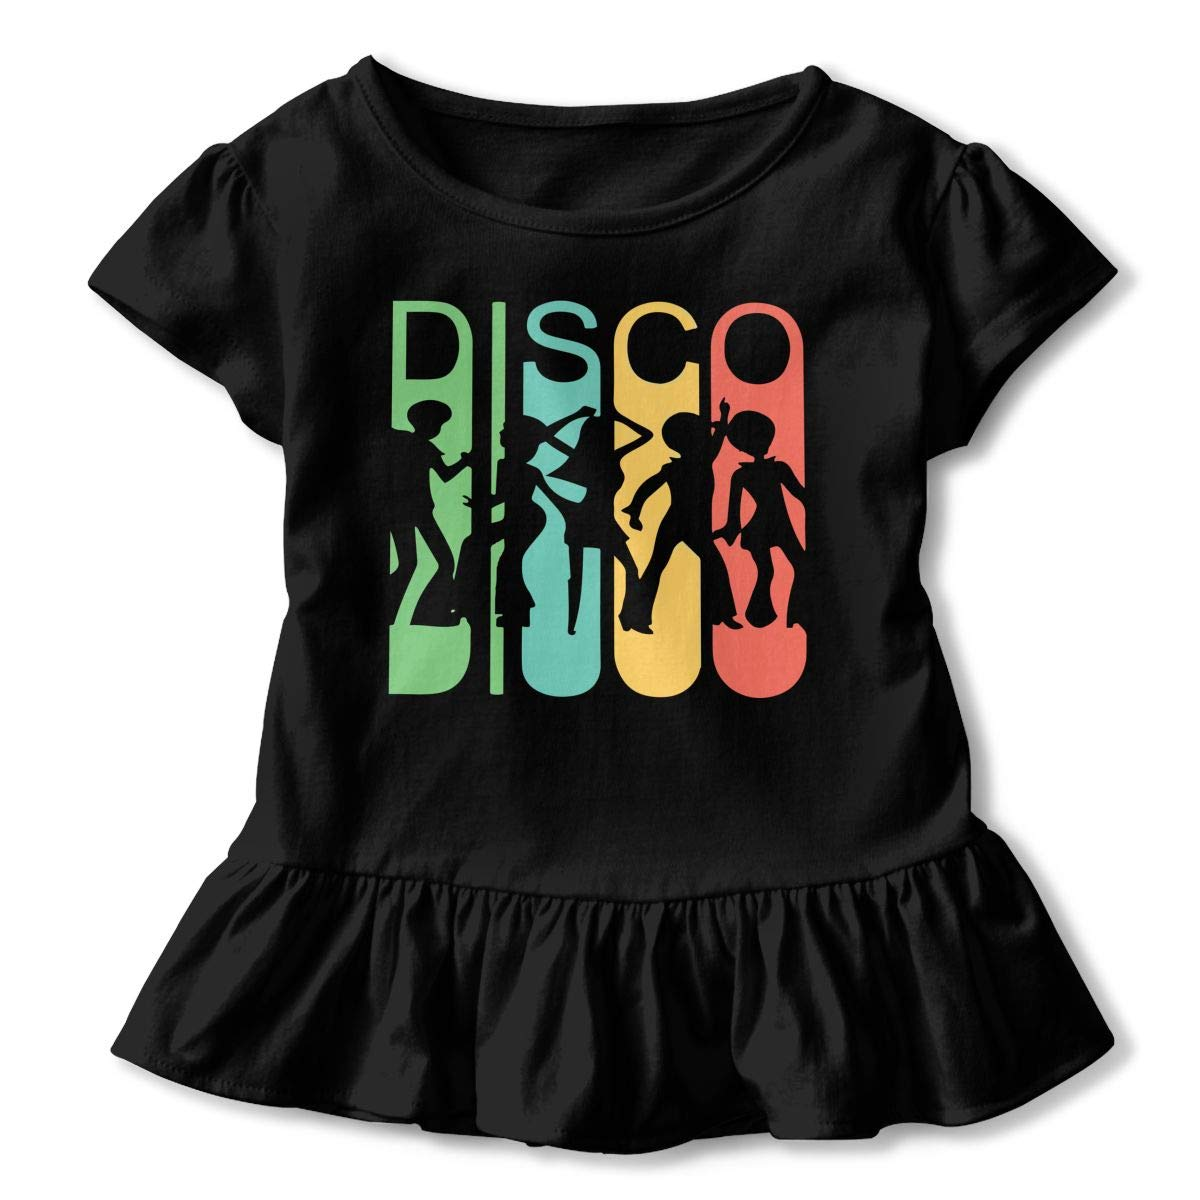 Vintage Retro 1970s Style Rainbow Disco Dancers Toddler//Infant Girls Short Sleeve Ruffles Shirt T-Shirt for 2-6T